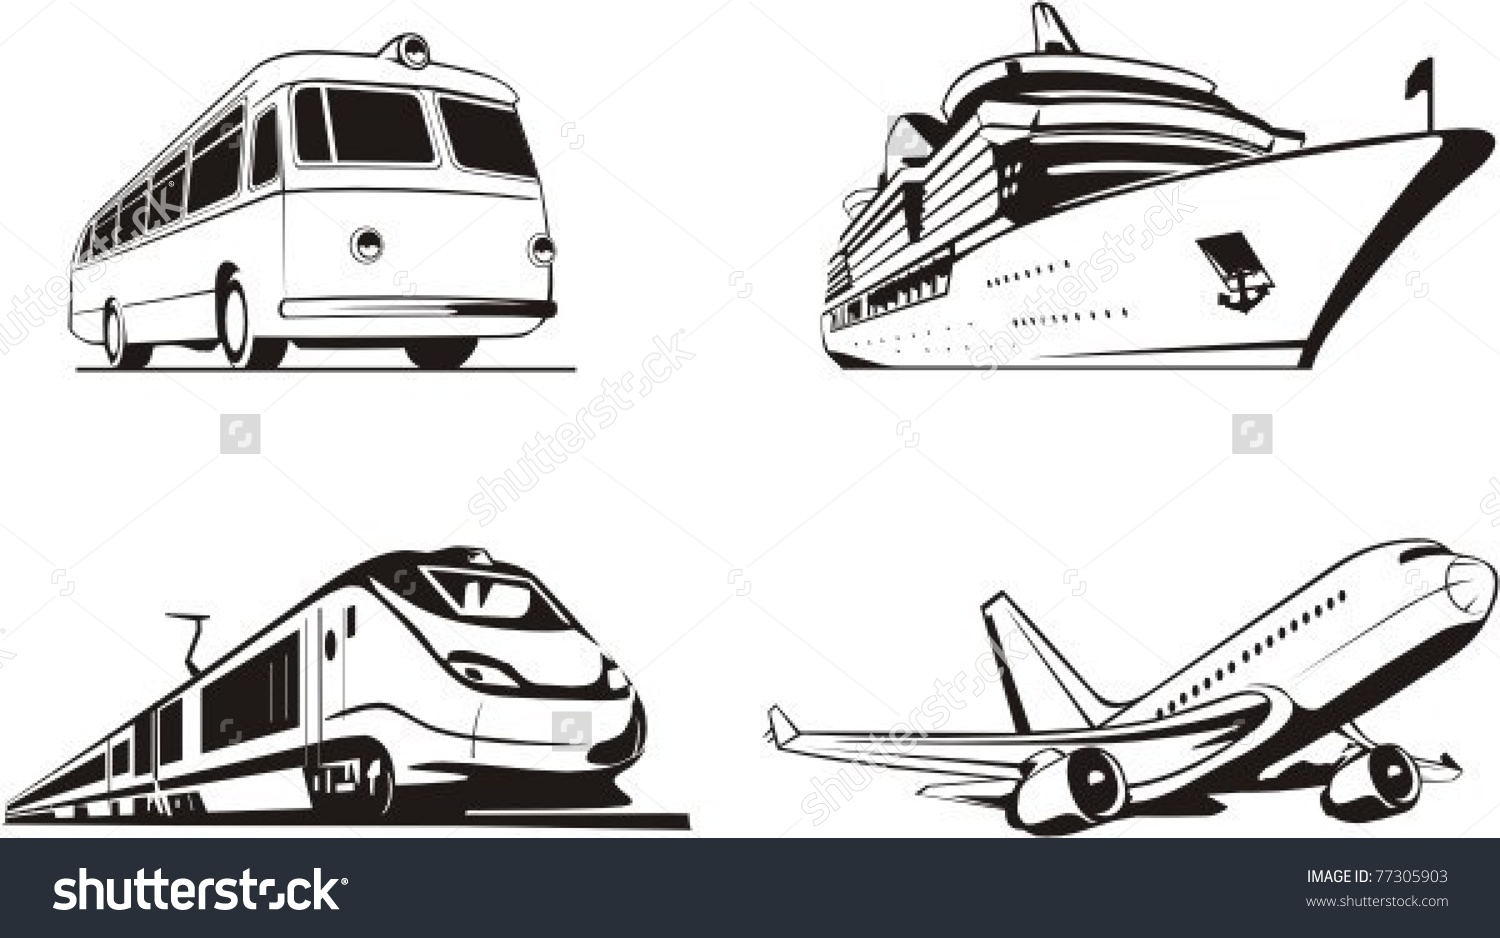 Transportation Passenger By All Means Transport Stock Vector.